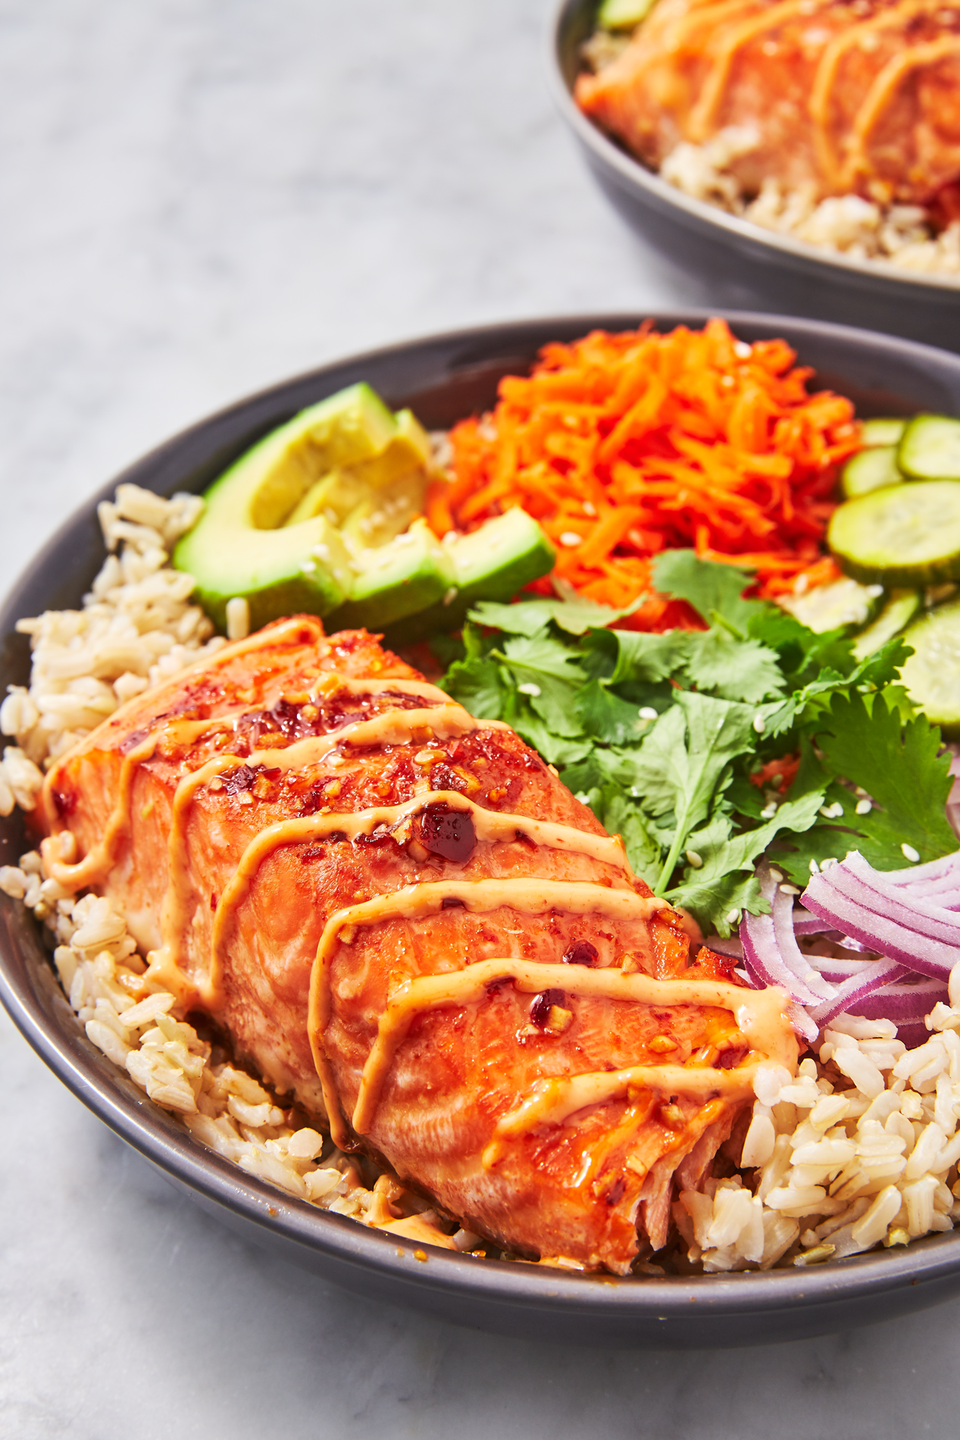 """<p>The grain bowl of your dreams.</p><p>Get the recipe from <a href=""""https://www.delish.com/cooking/recipe-ideas/a26950912/spicy-salmon-bowl-recipe/"""" rel=""""nofollow noopener"""" target=""""_blank"""" data-ylk=""""slk:Delish"""" class=""""link rapid-noclick-resp"""">Delish</a>.</p>"""